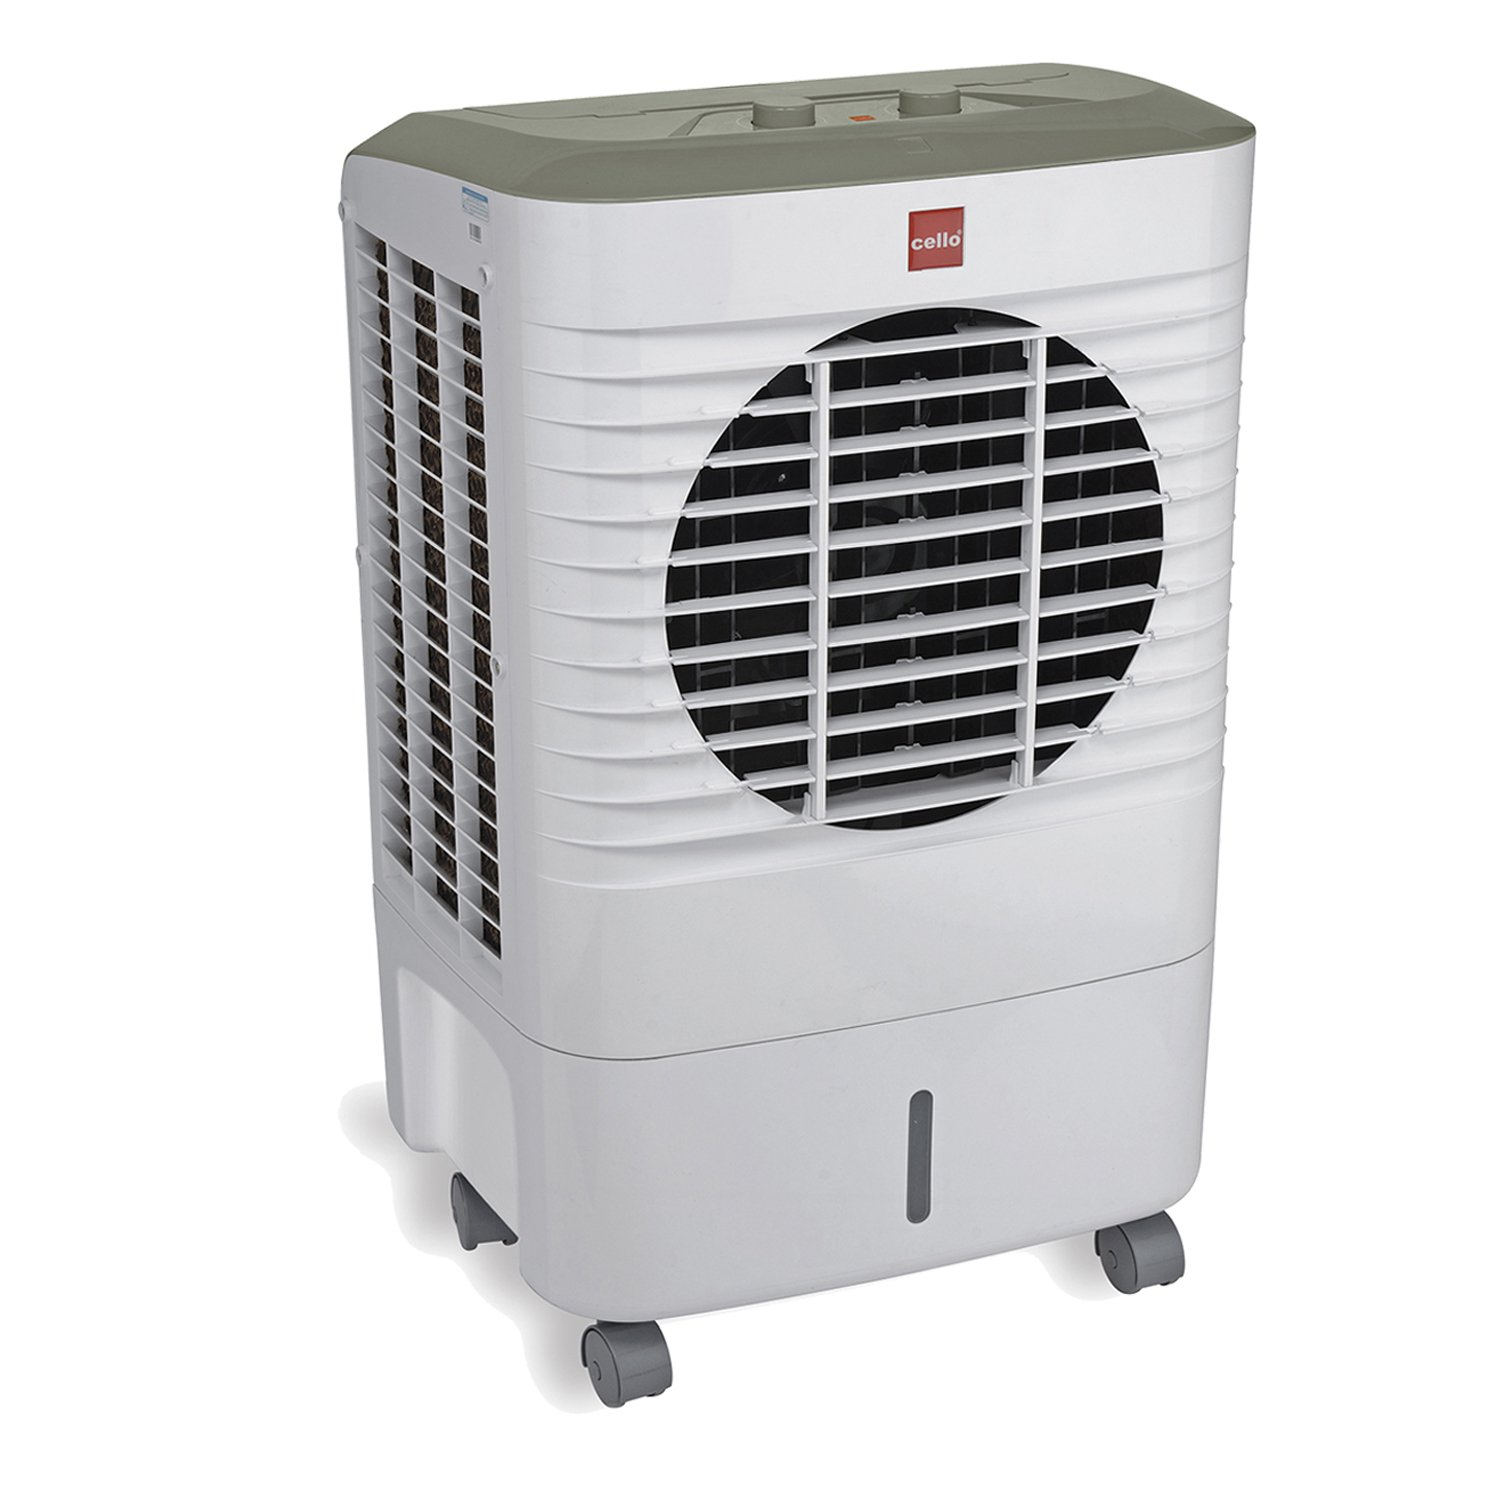 Cello Smart 30 Litre Air Cooler (White/Grey) Price in ...